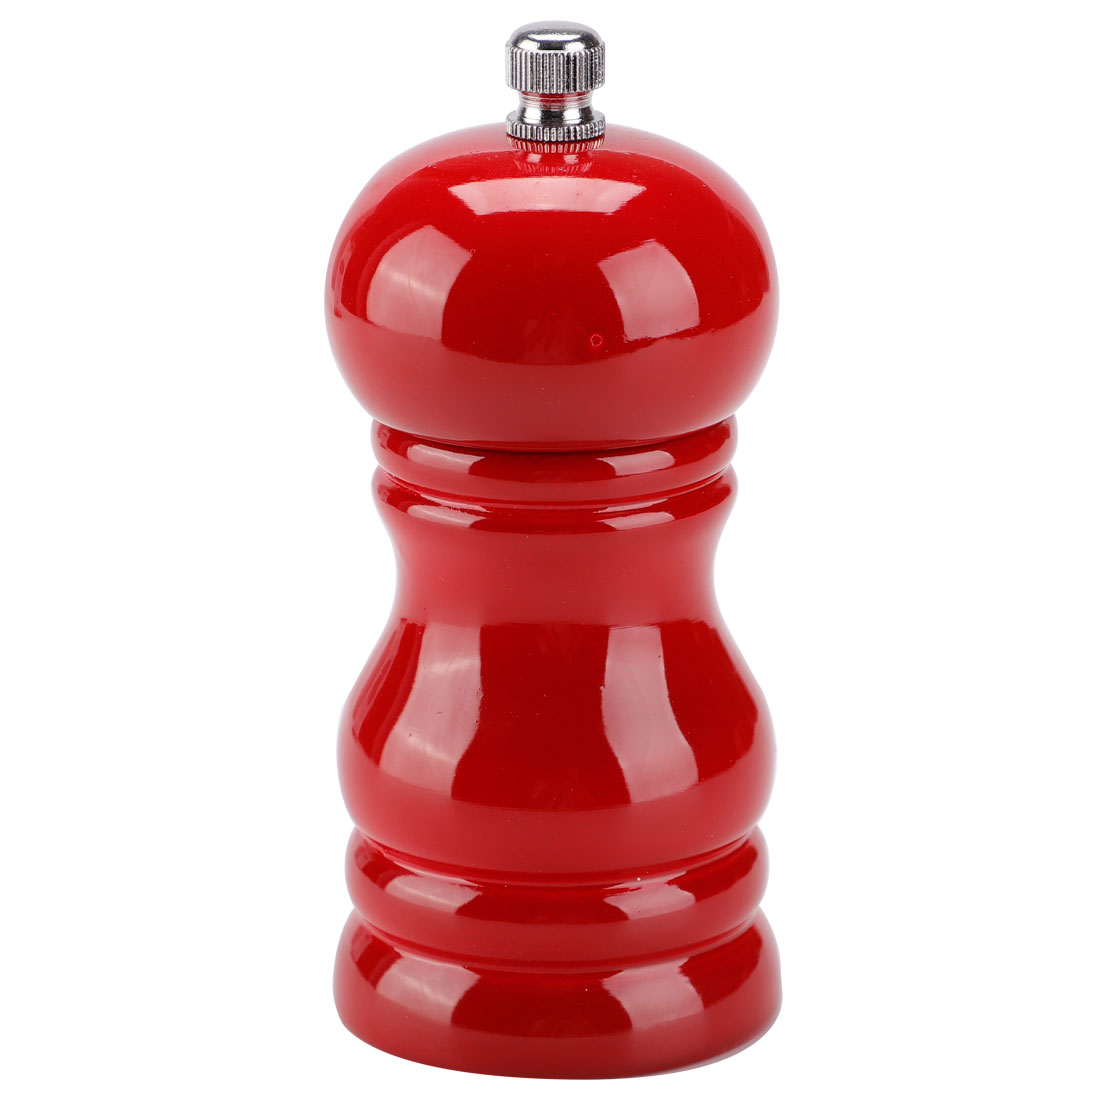 """4.5"""" Wooden Salt and Pepper Grinder Shakers with Adjustable Coarseness Red"""